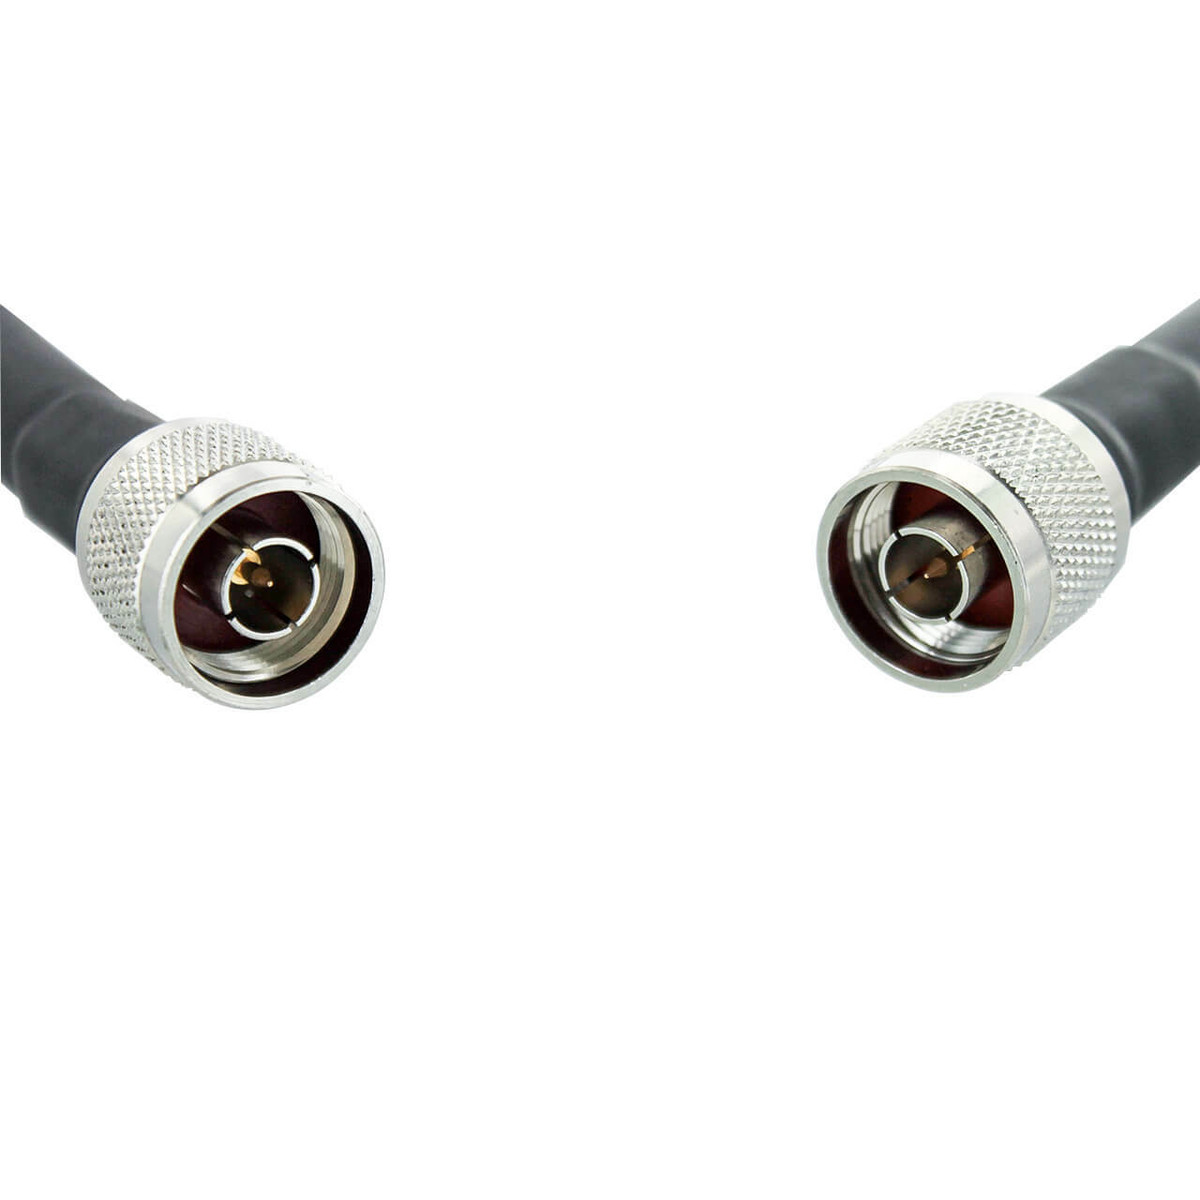 Bolton Tech Bolton Technical N-Male to N-Male Bolton400 Ultra Low-Loss Coax Cable or 30 ft Cable